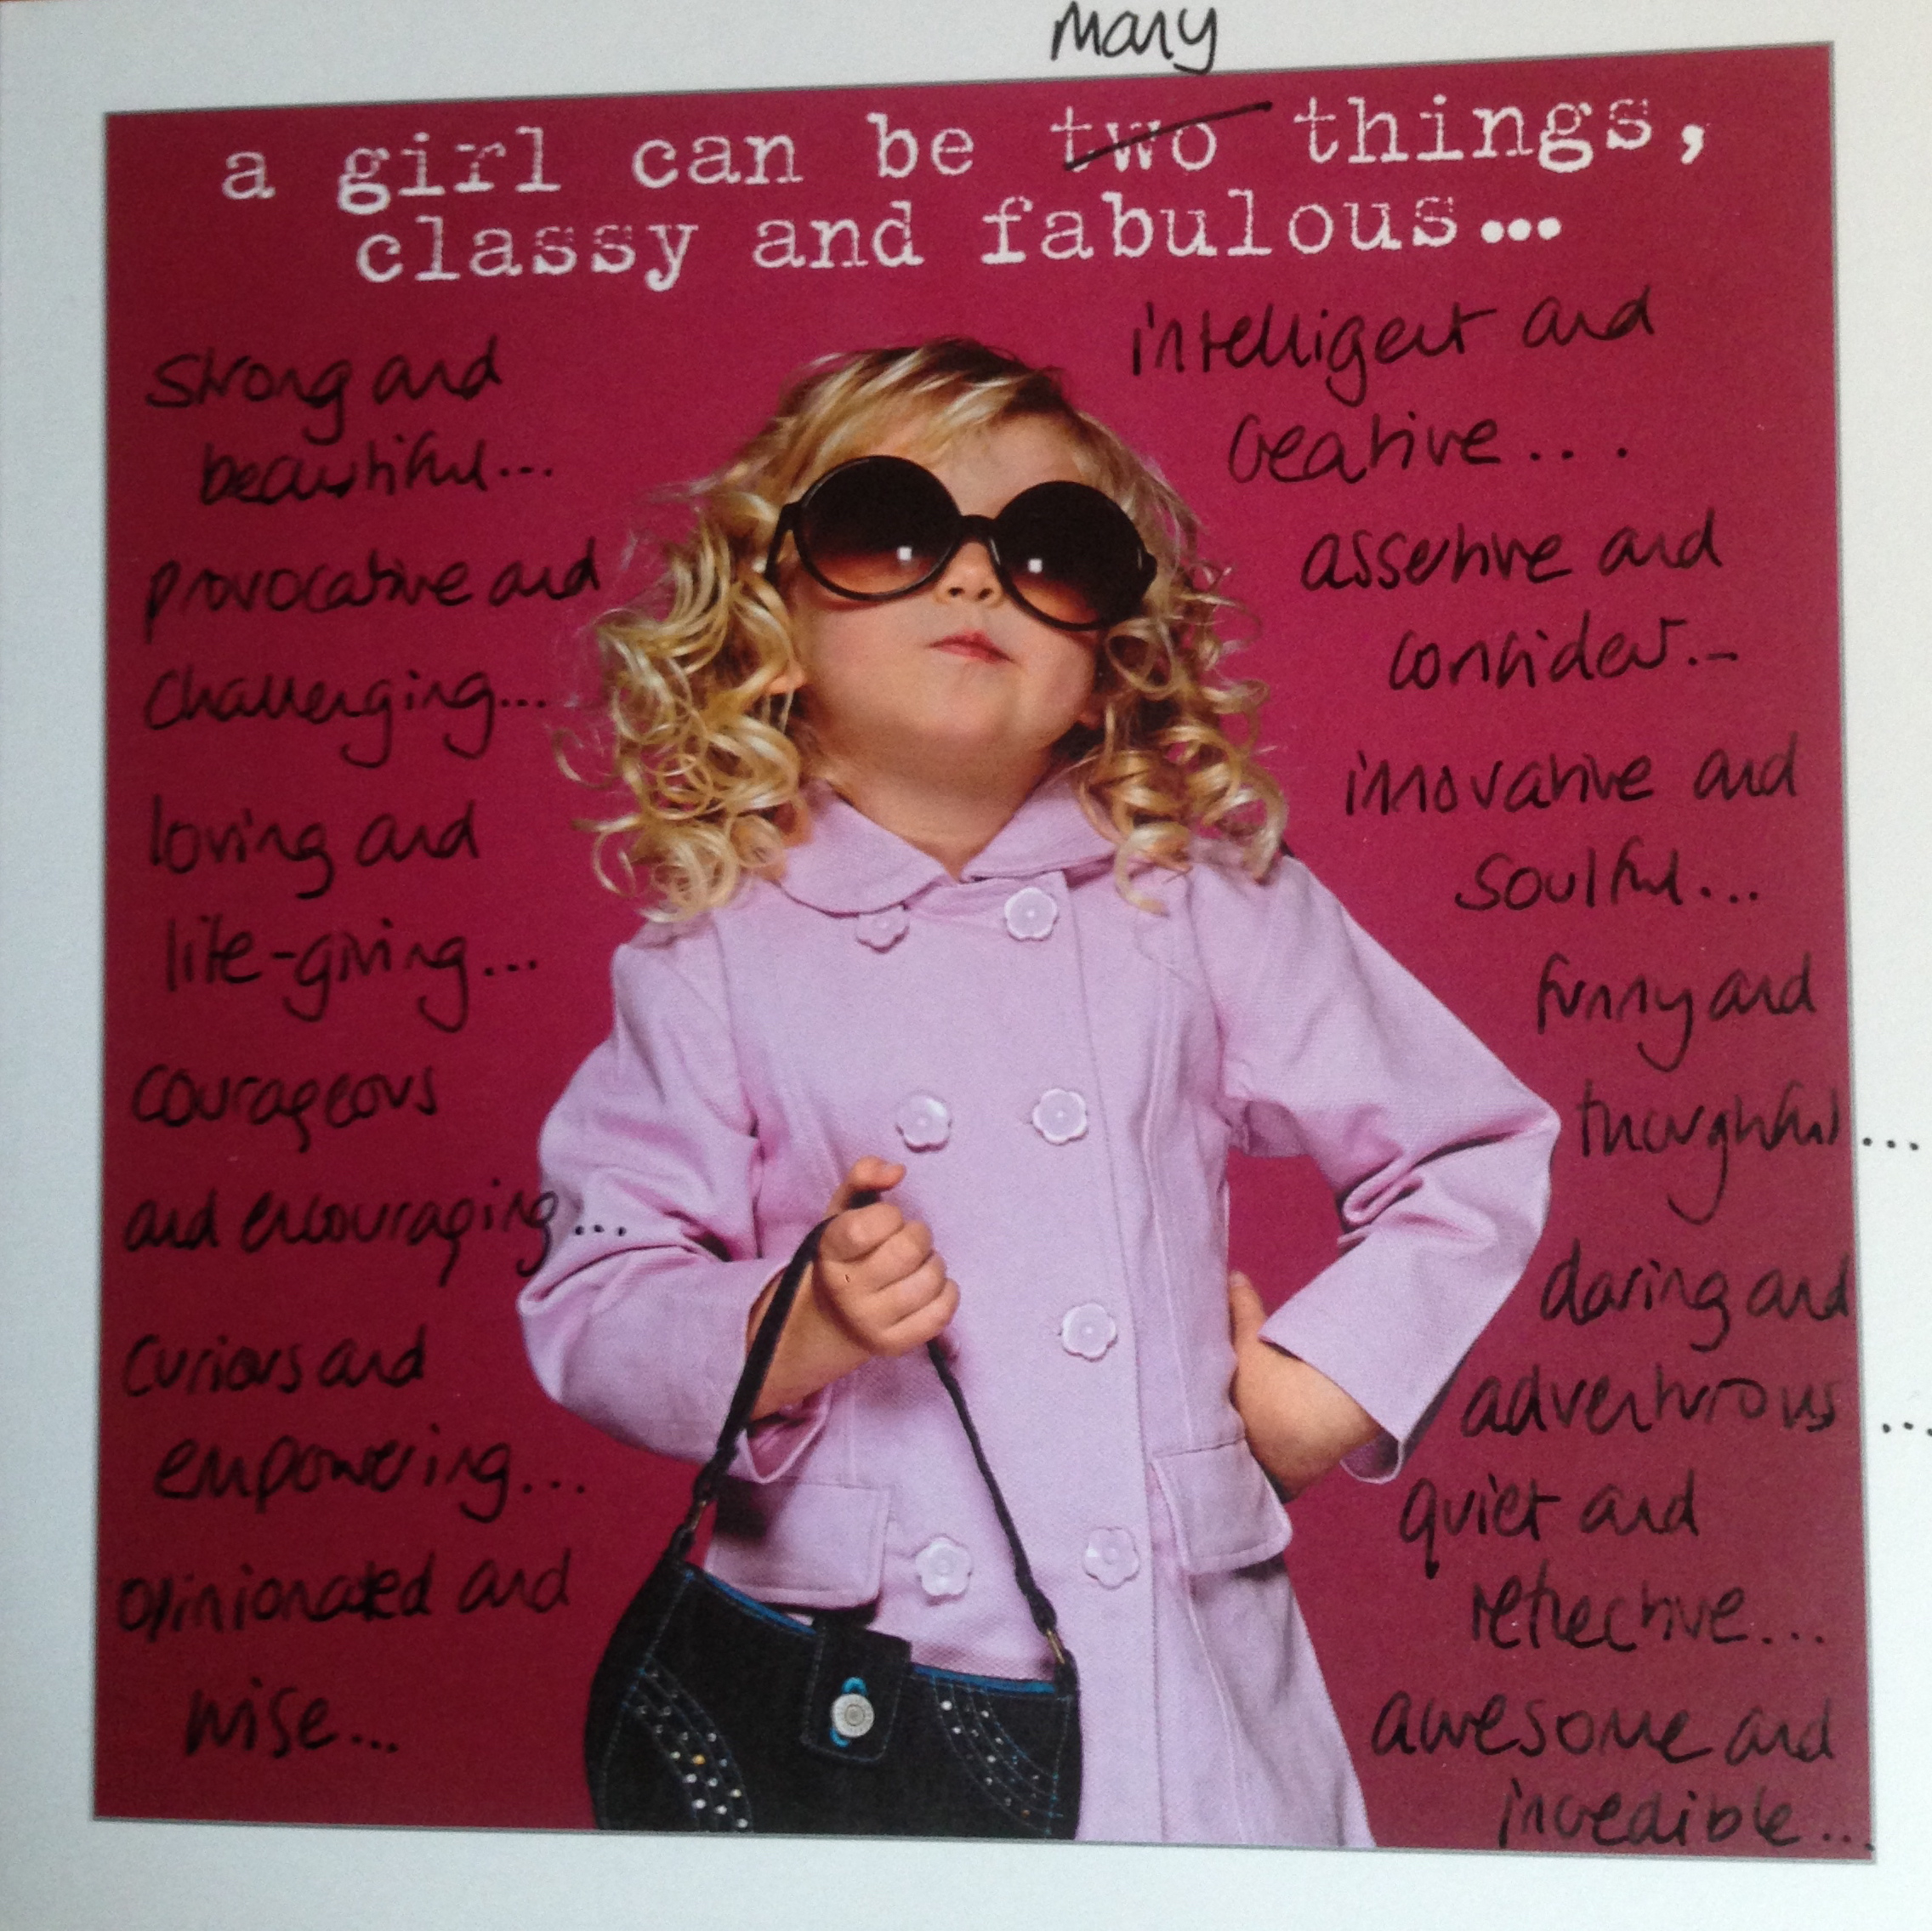 I Have Four Nieces And Every Time Go To Buy A Birthday Card For Them Despair Of Whats On Offer They Are All Creative Smart Independent Young Women